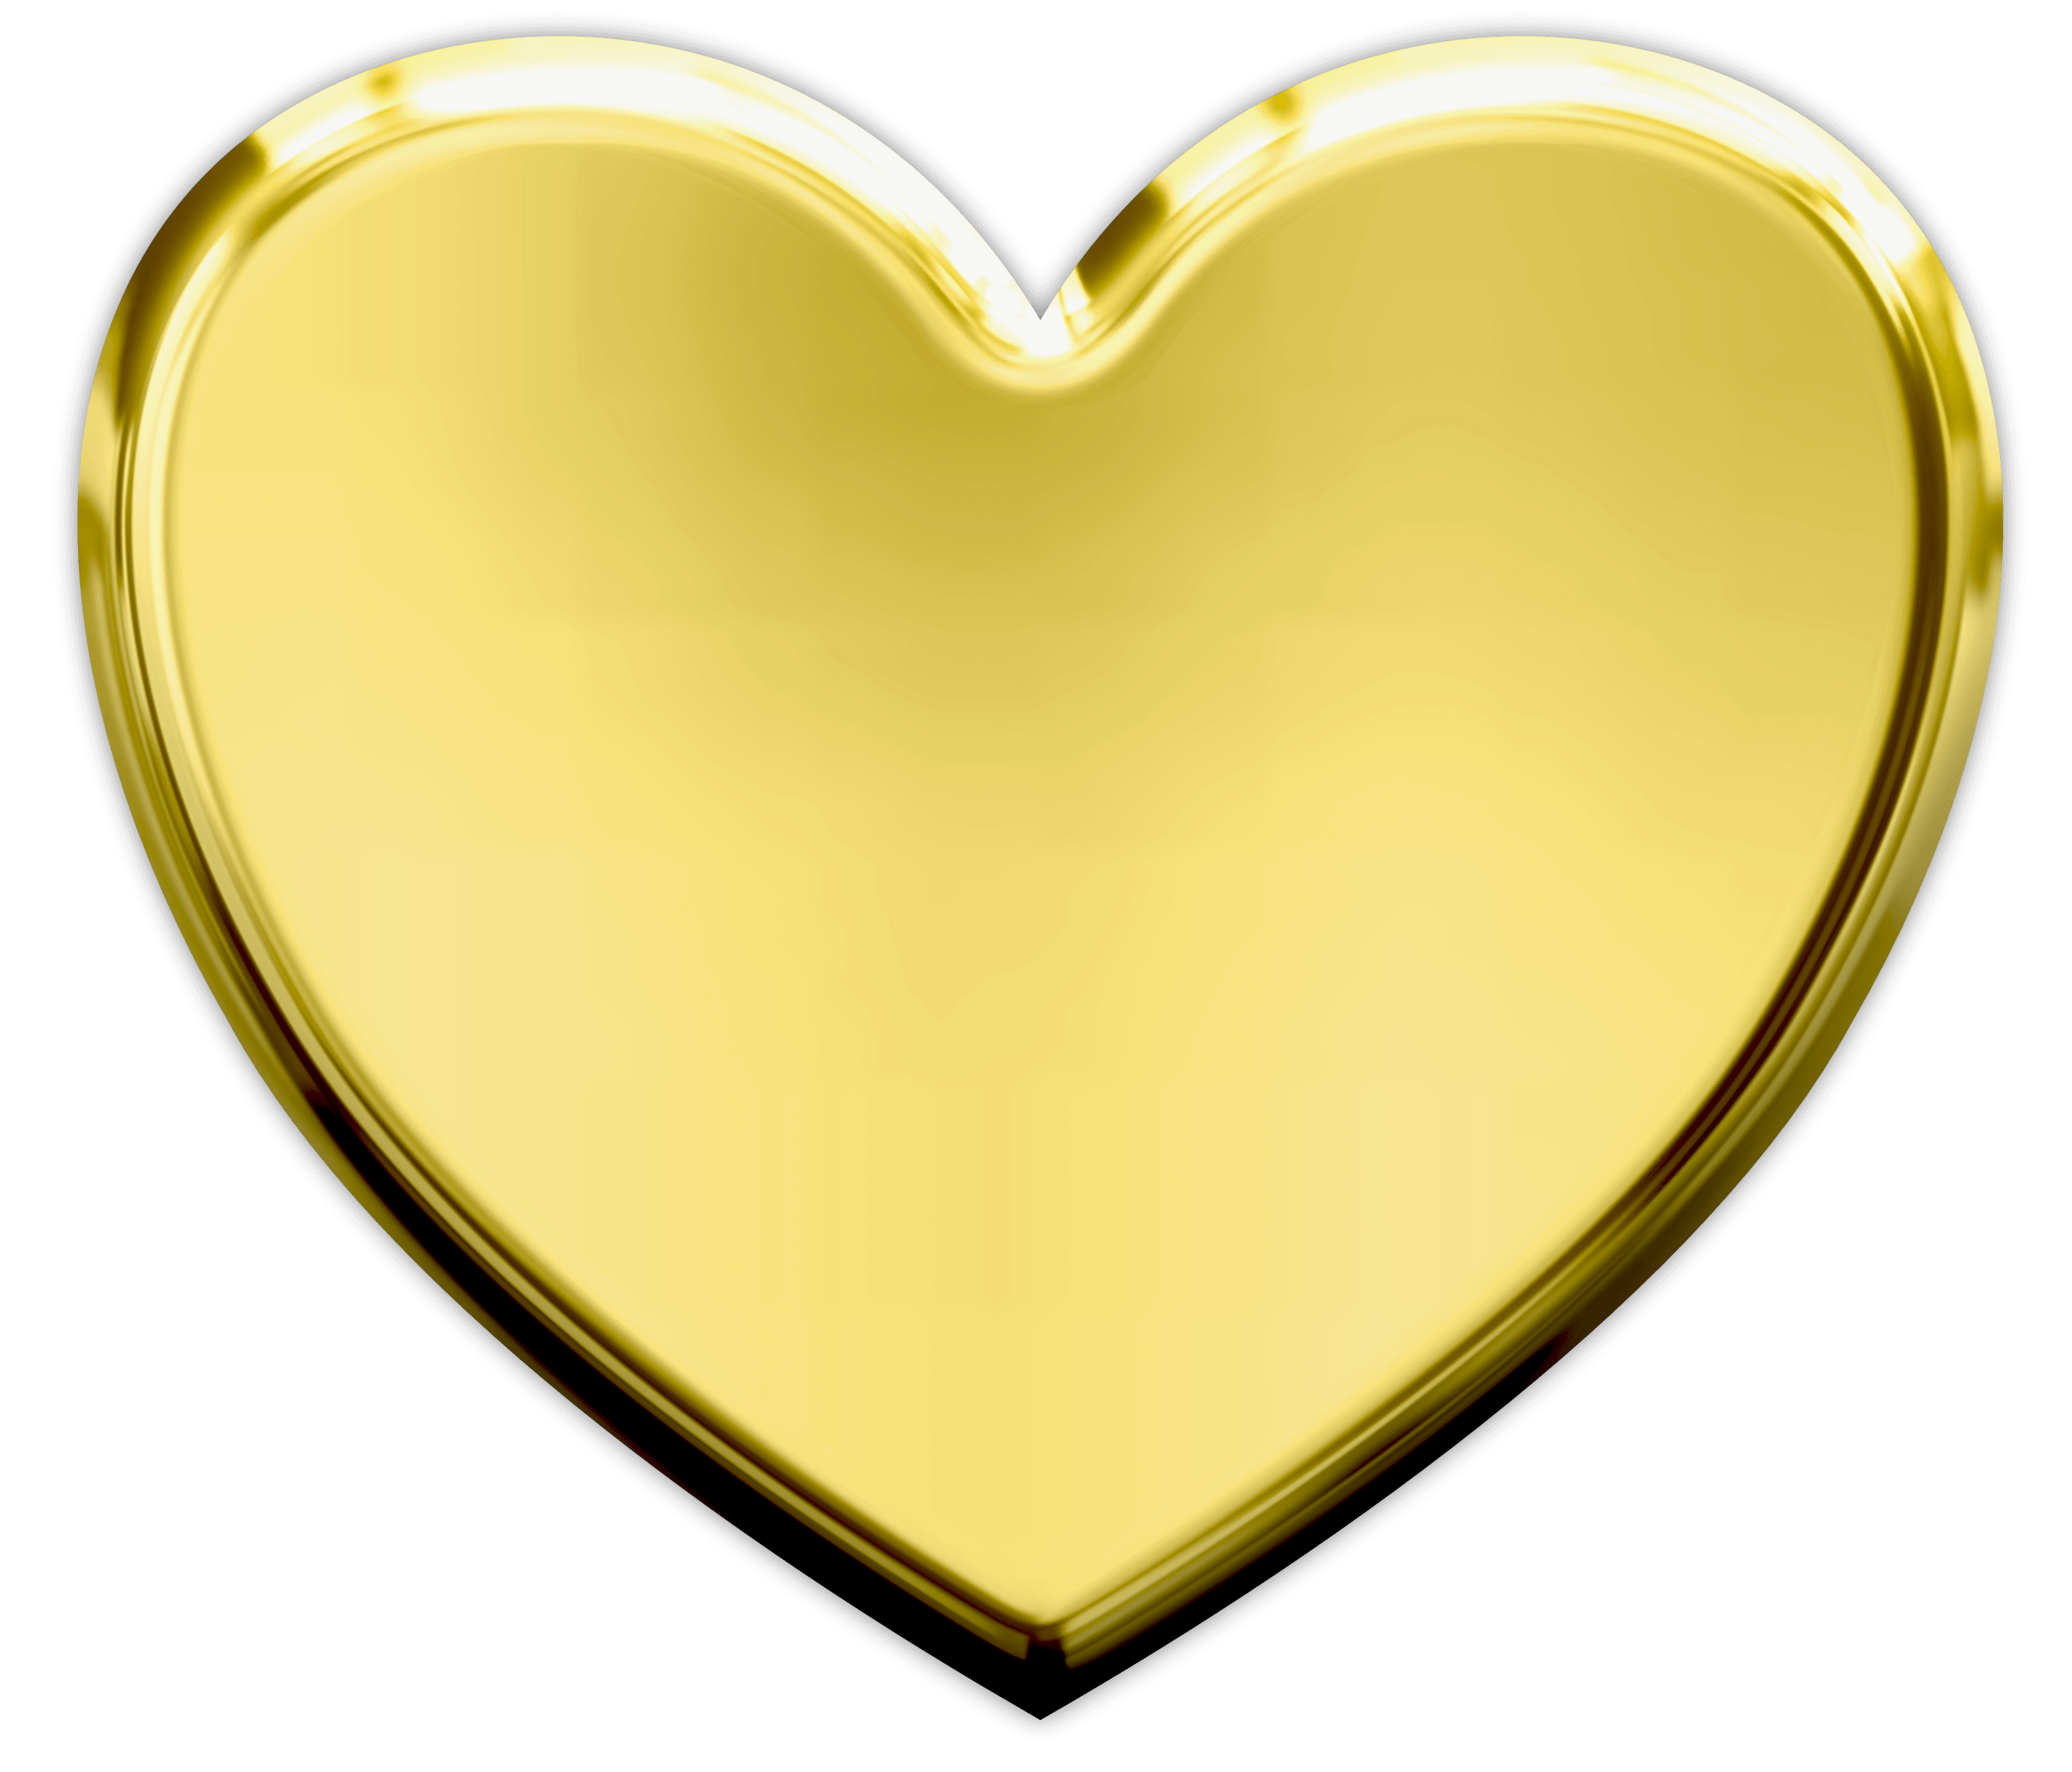 Hearts of gold dating services kenya